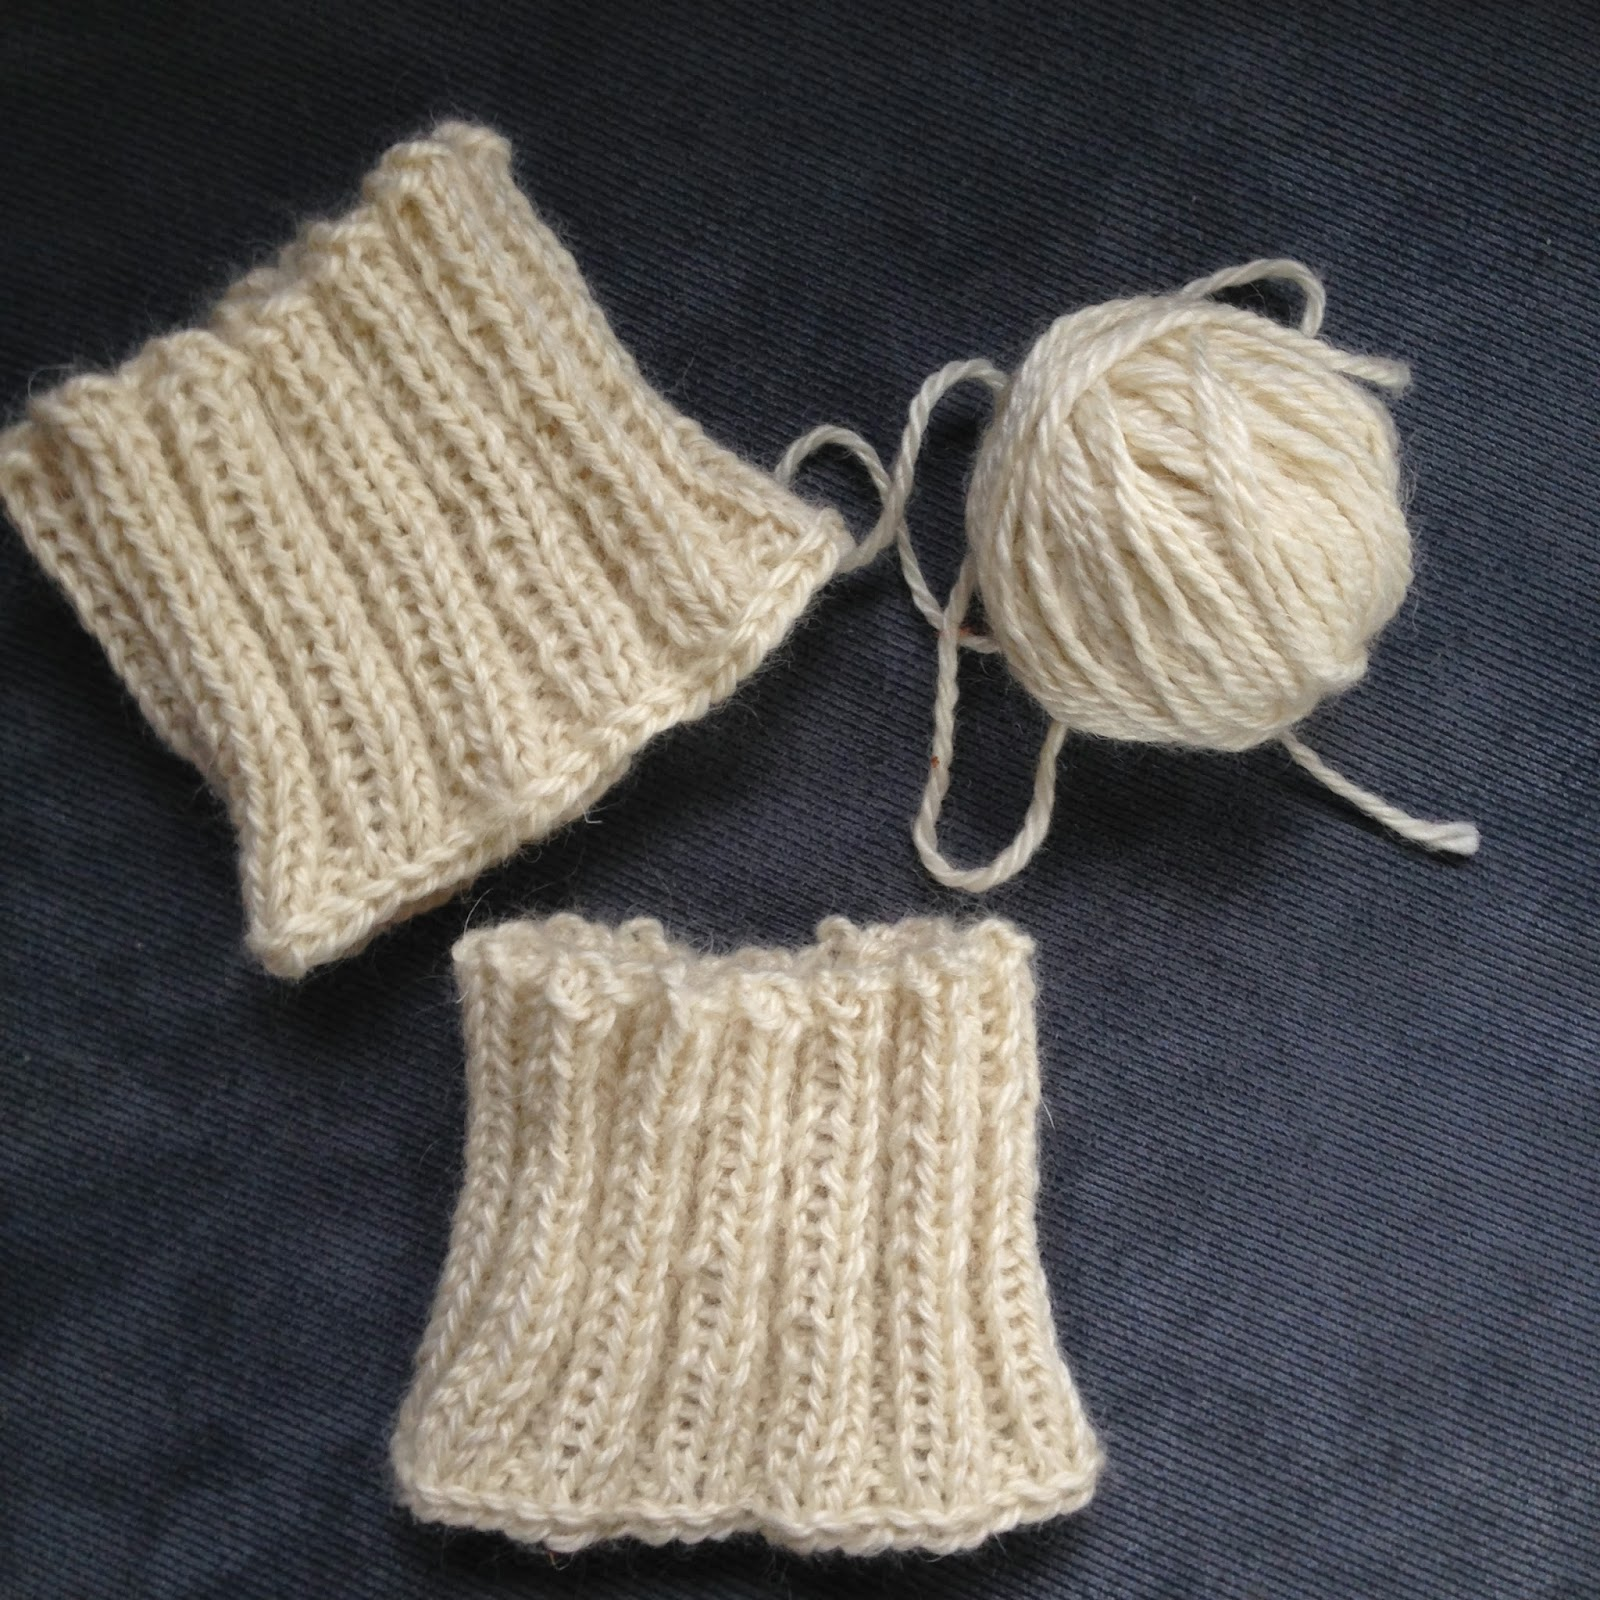 Knit Nat: Simple Knitted Boot Cuffs